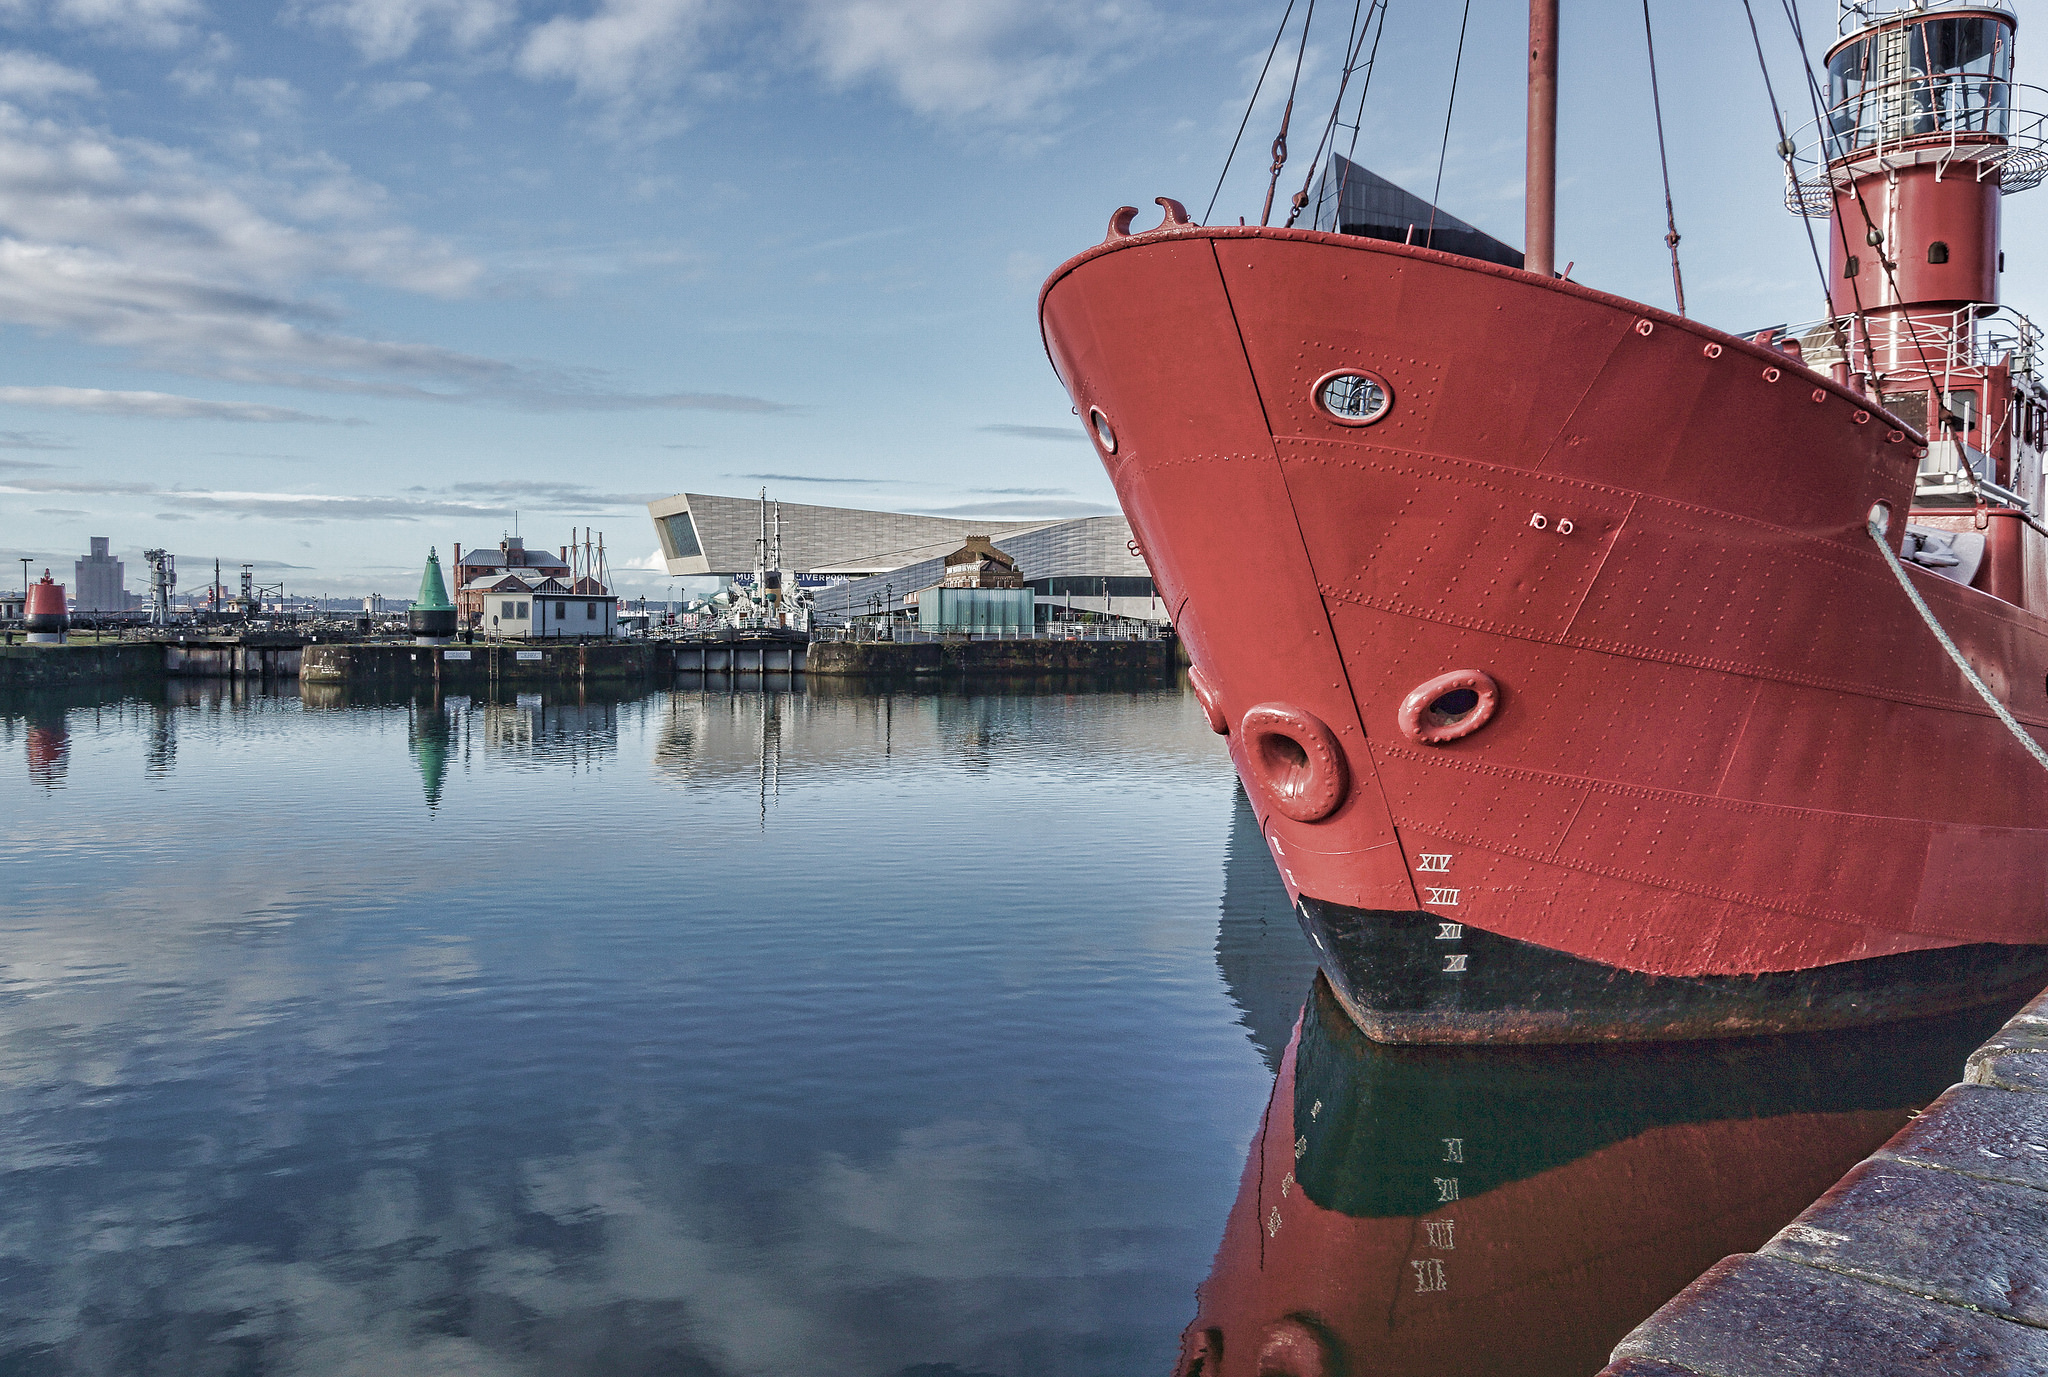 Liverpool's renowned waterfront. Image credit:  Beverley Goodwin / Creative Commons